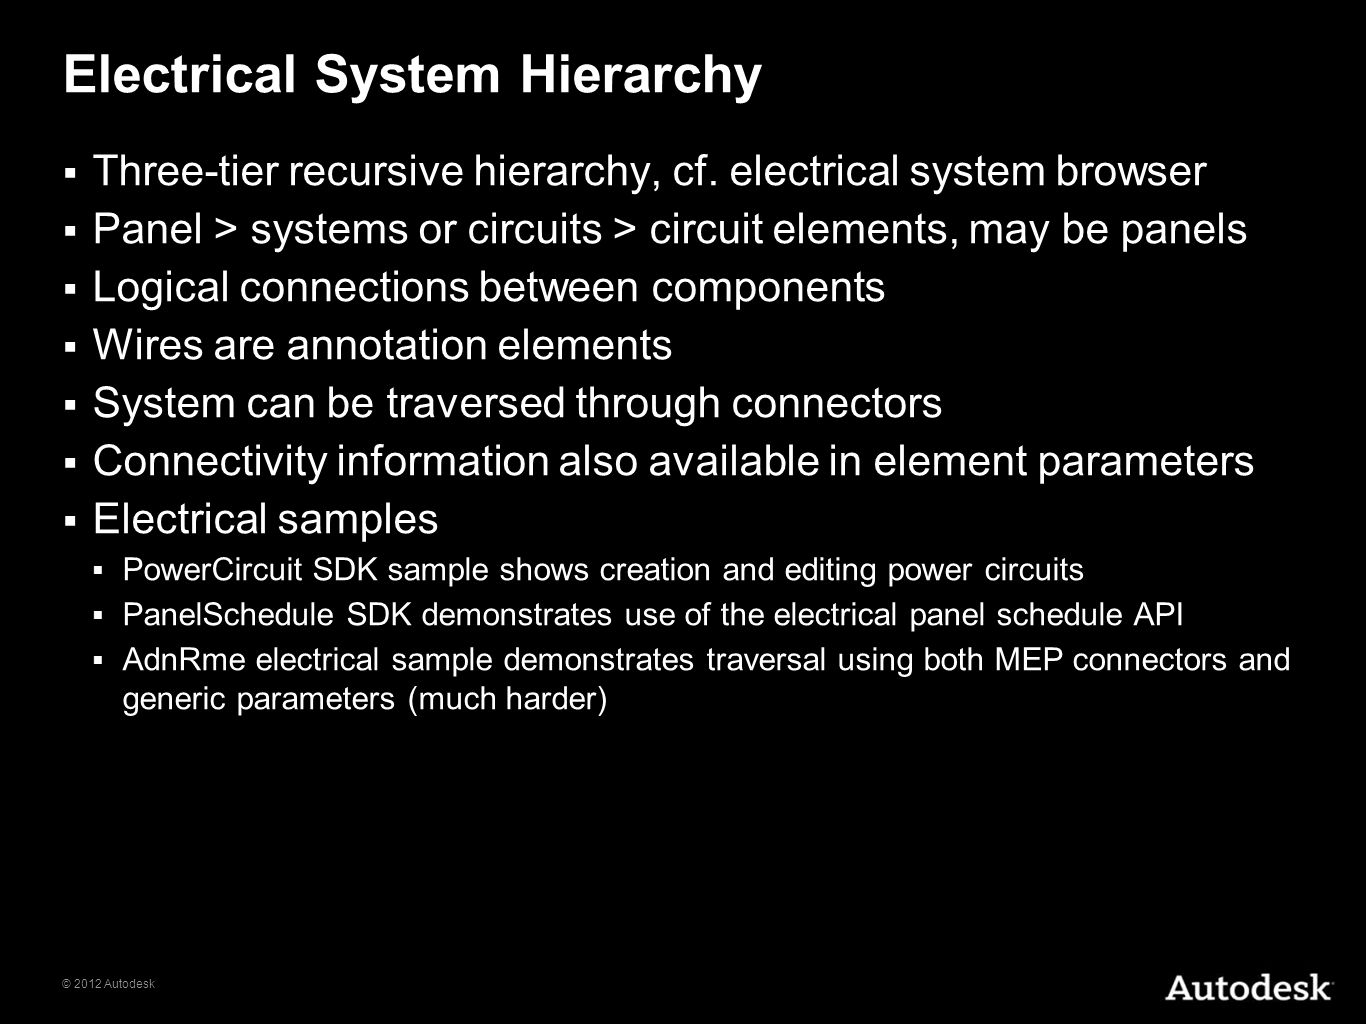 Electrical System Hierarchy